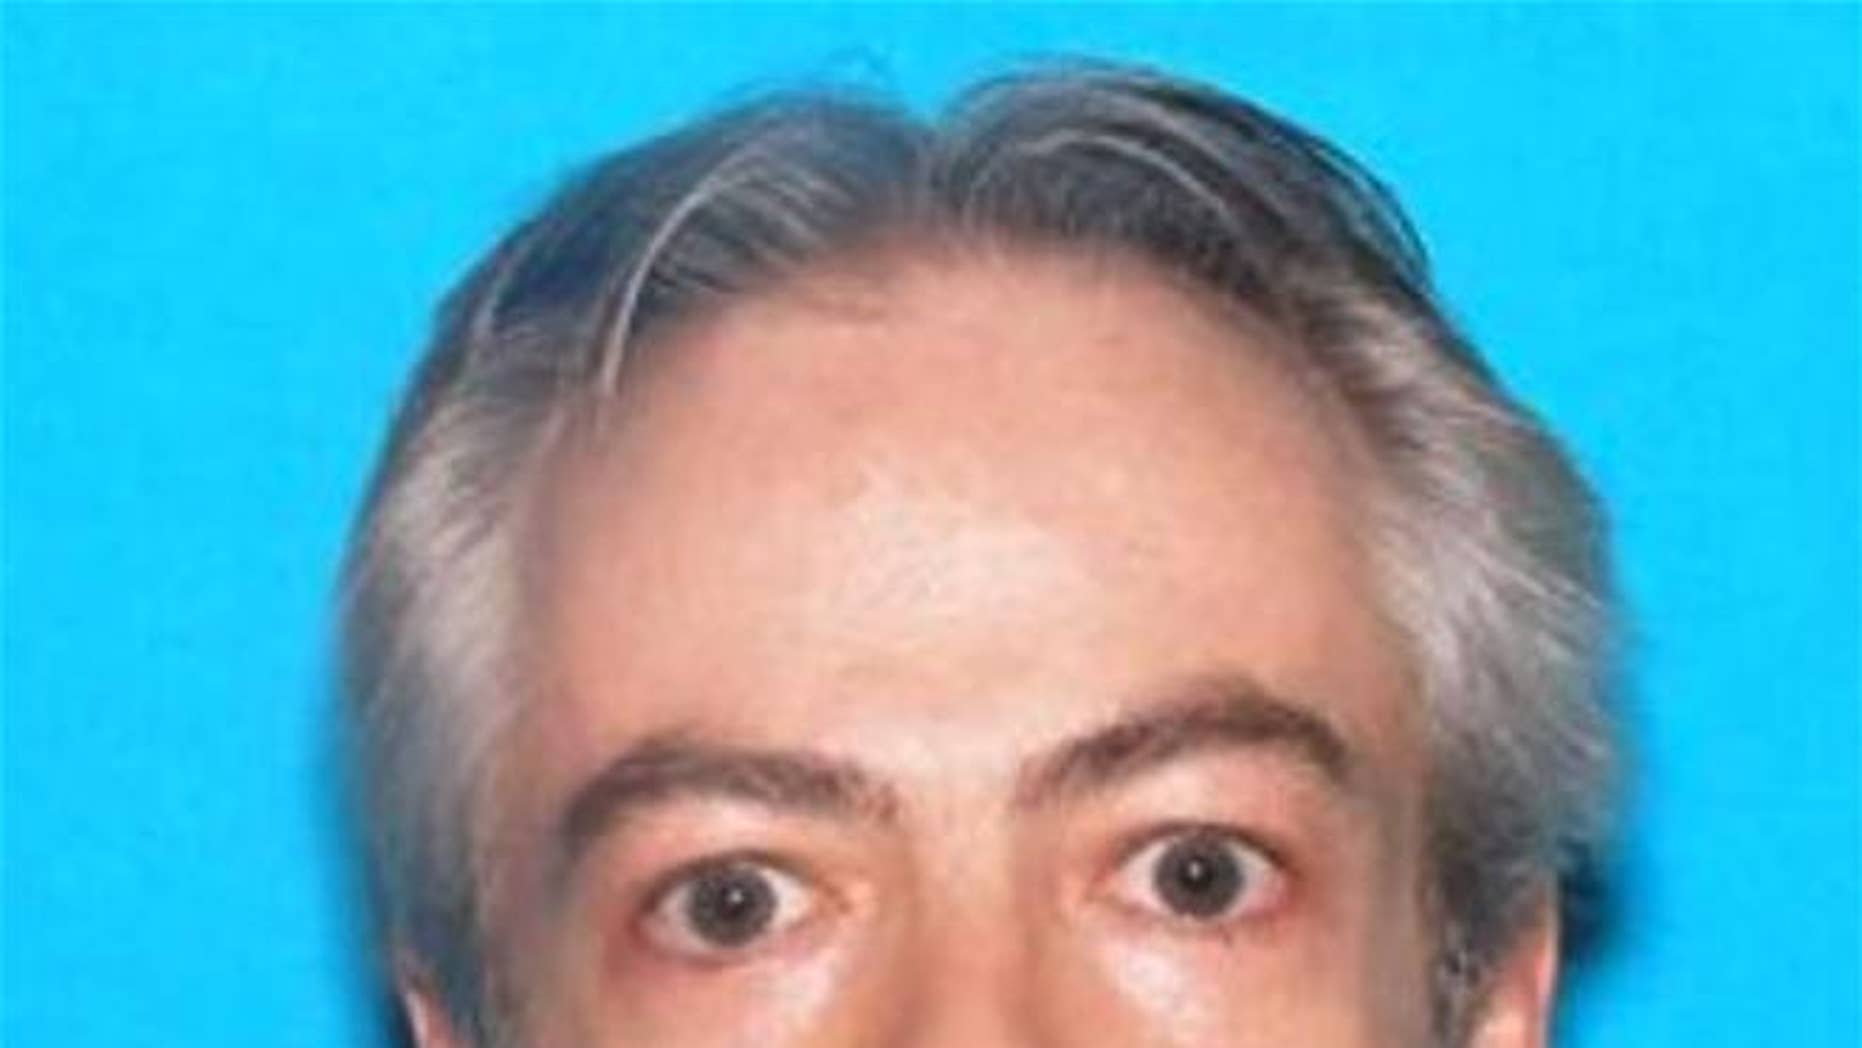 This photo released by the Chicago Police Department shows Wyndham Lathem, an associate professor of microbiology and immunology at Northwestern University.